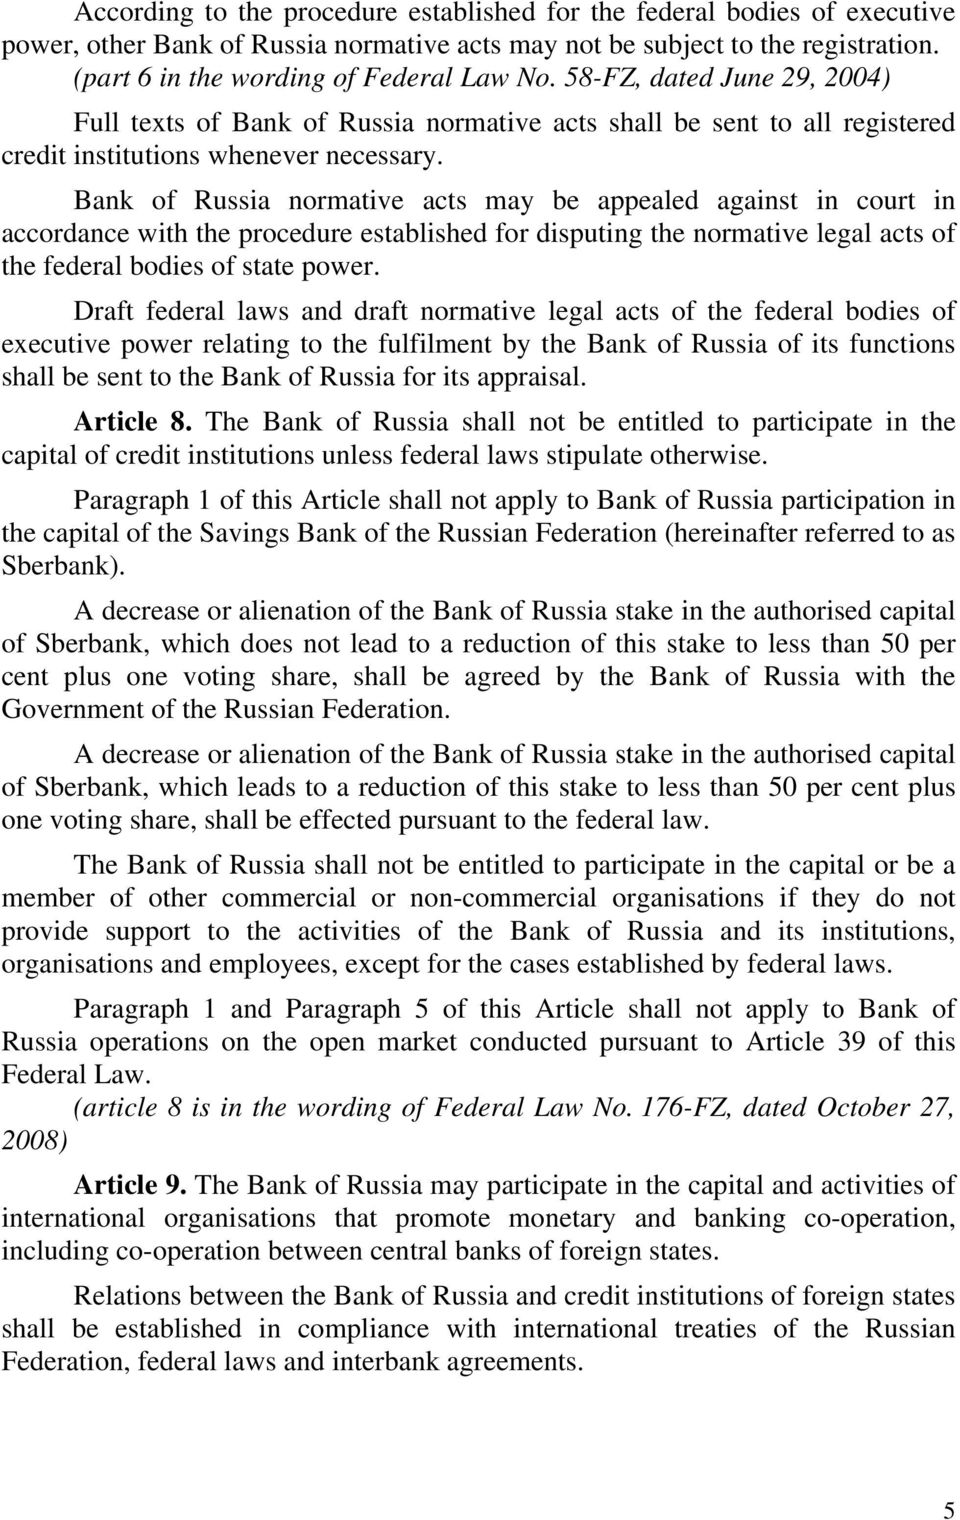 Bank of Russia normative acts may be appealed against in court in accordance with the procedure established for disputing the normative legal acts of the federal bodies of state power.